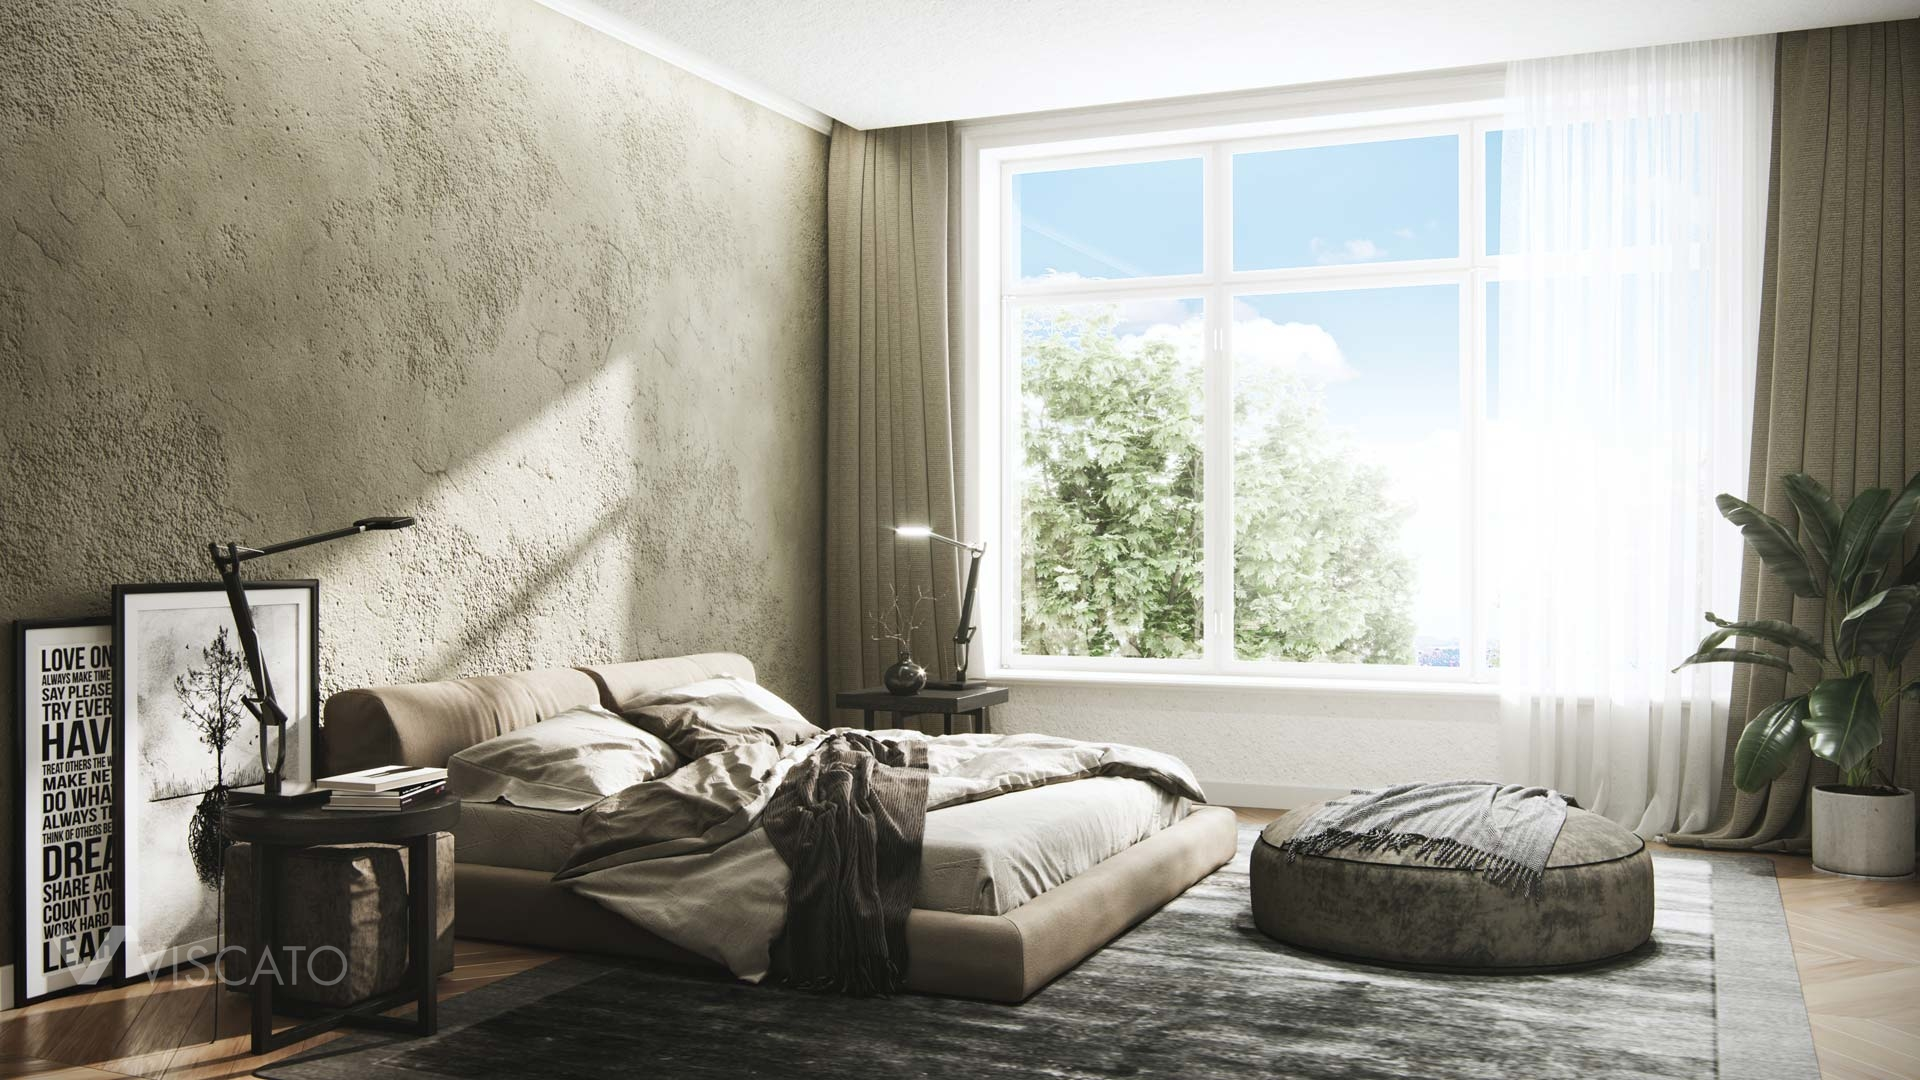 modern bedroom 3D visualization, Viscato